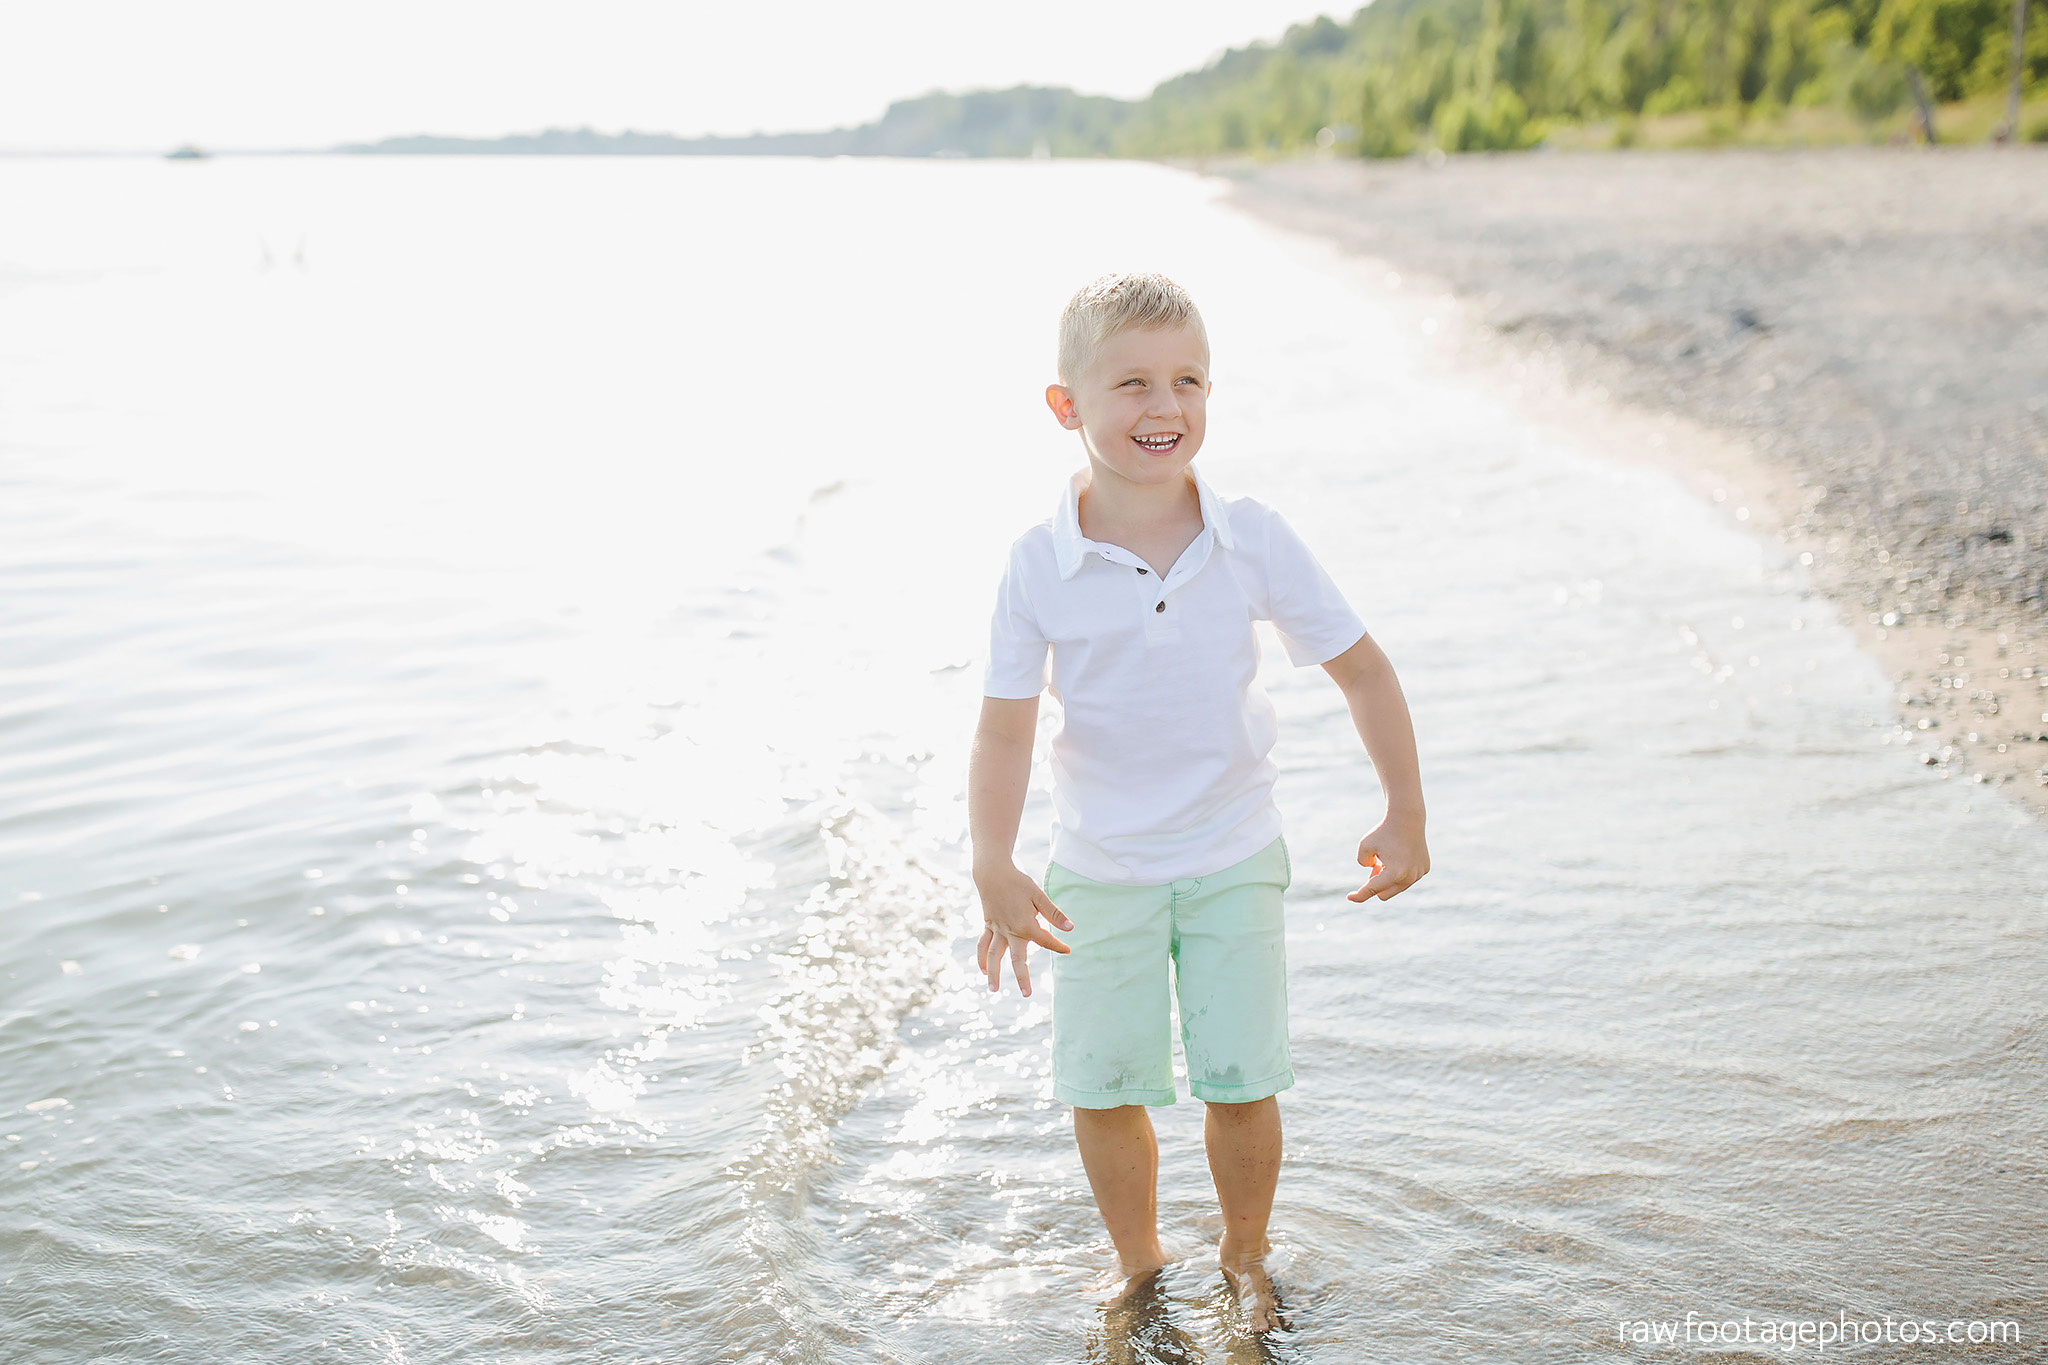 london_ontario_family_photographer-beach_minis-port_stanley_beach-raw_footage_photography026.jpg